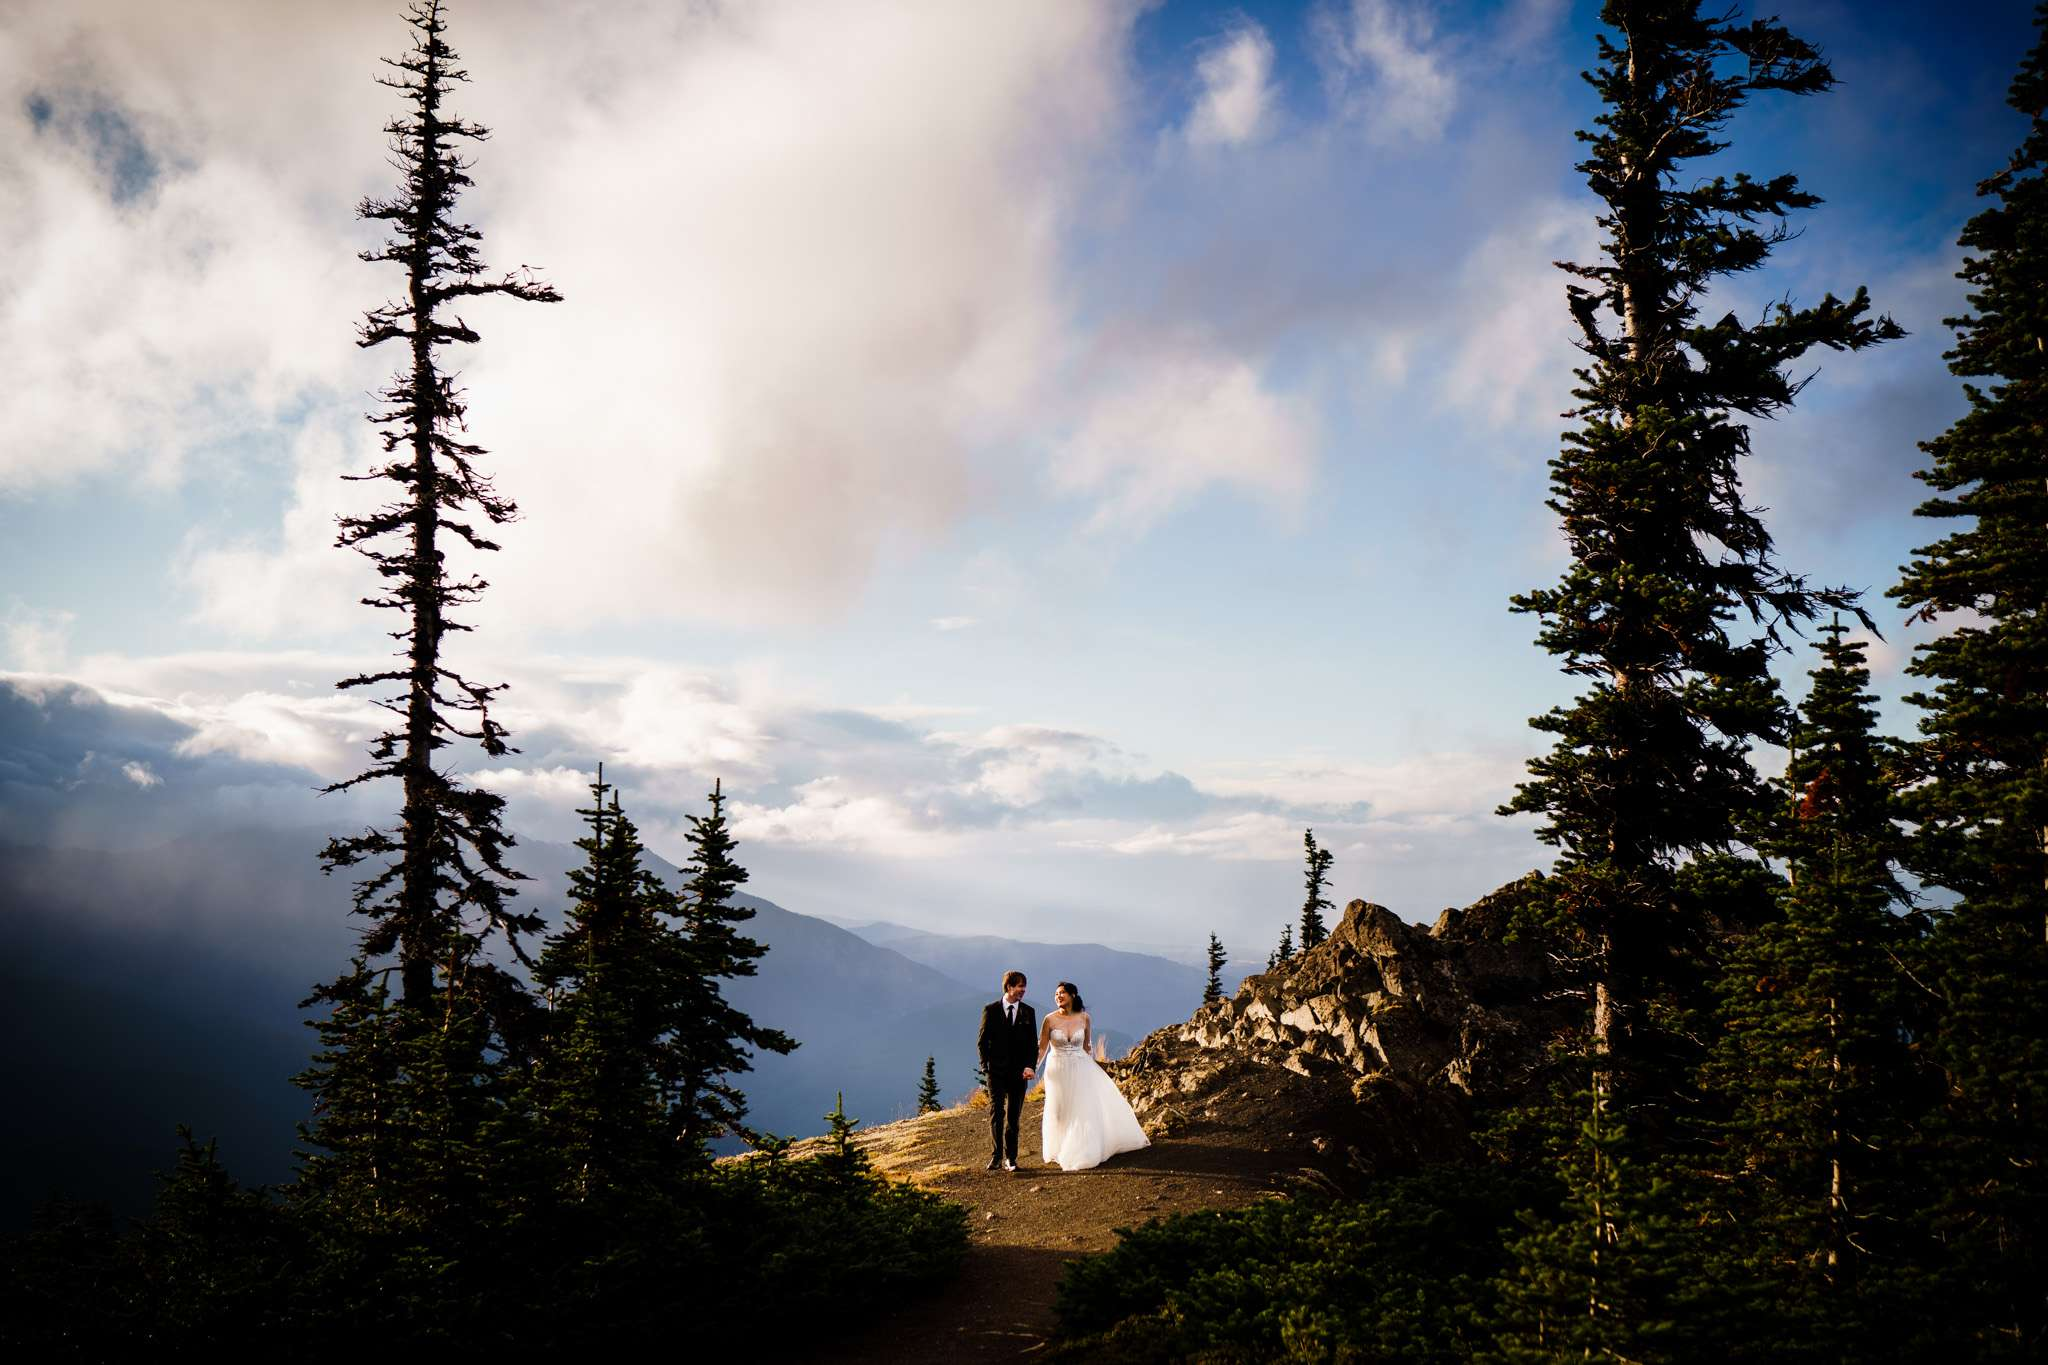 A bride and groom walking hand in hand on top of a cliff